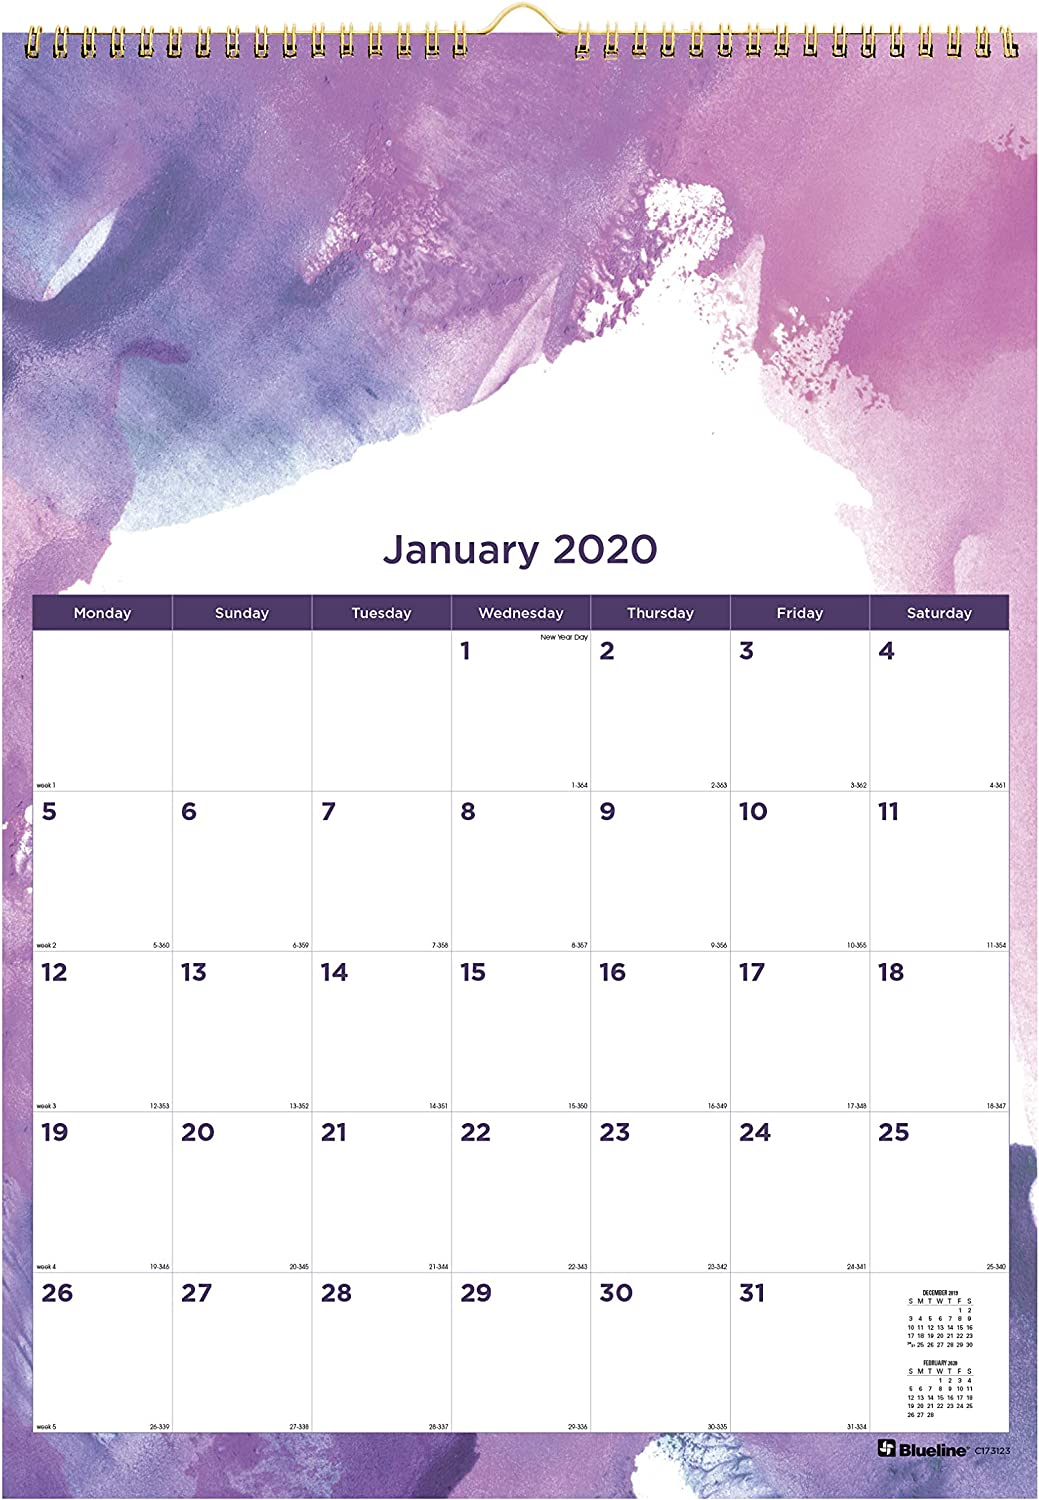 Blueline 2020 Monthly Wall Calendar, 12 x 17 inches, Passion Paintstroke Design (C173123-20)